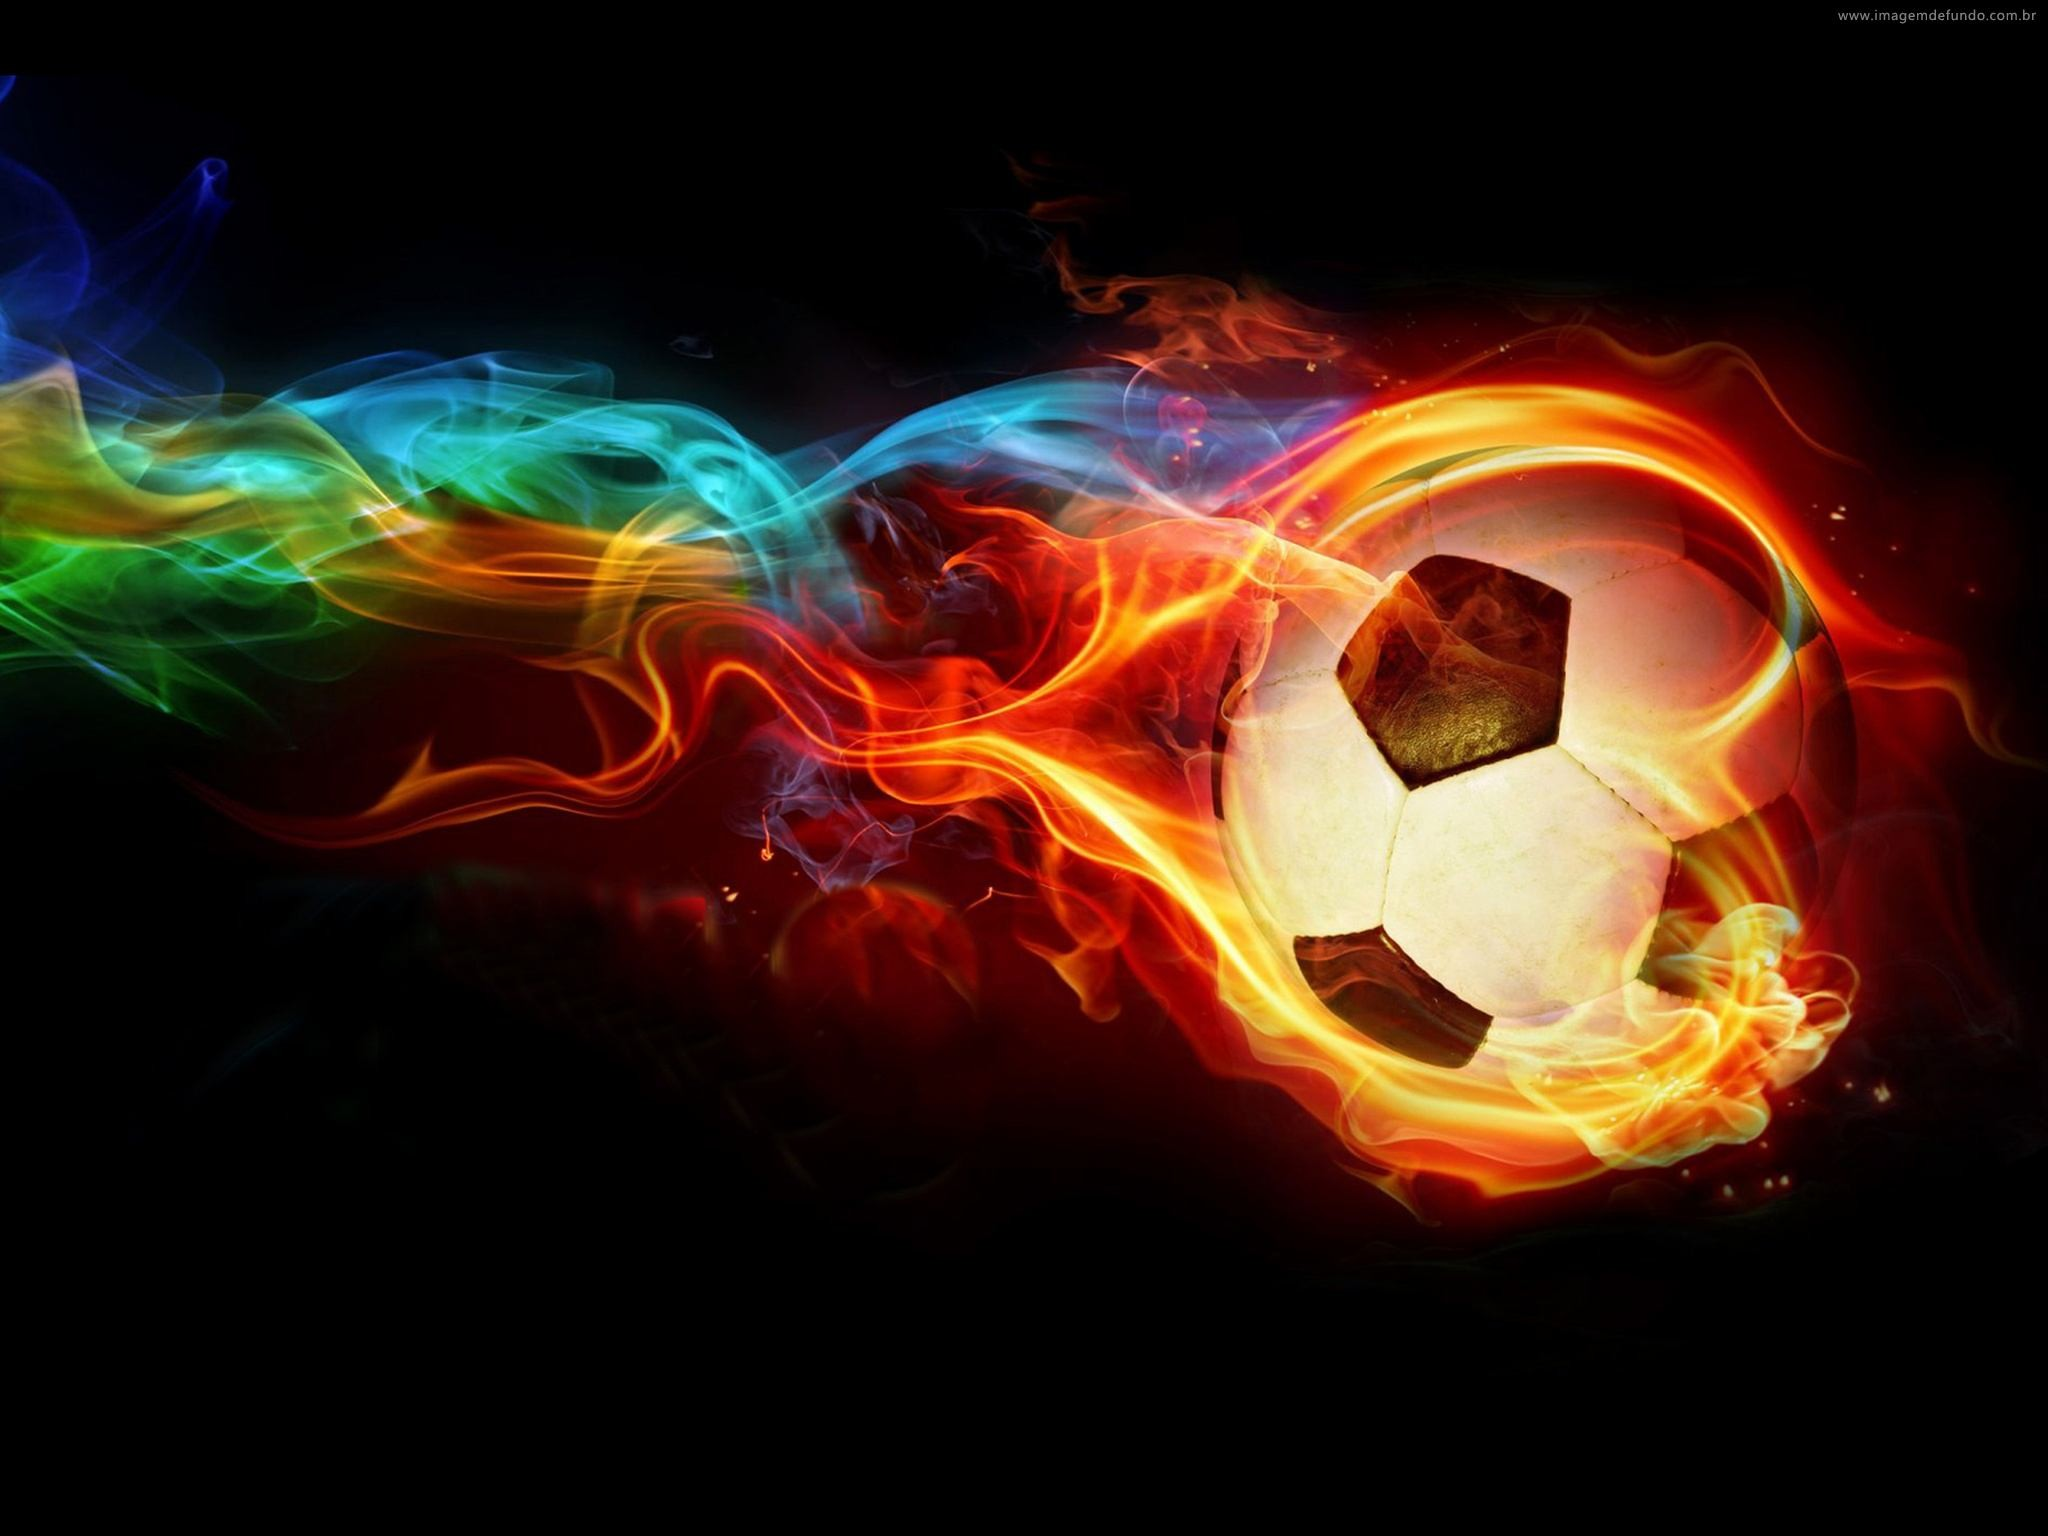 Cool soccer wallpapers 63 images 2048x1536 cool soccer backgrounds wallpaper 1300800 cool soccer pictures wallpapers 73 wallpapers voltagebd Choice Image